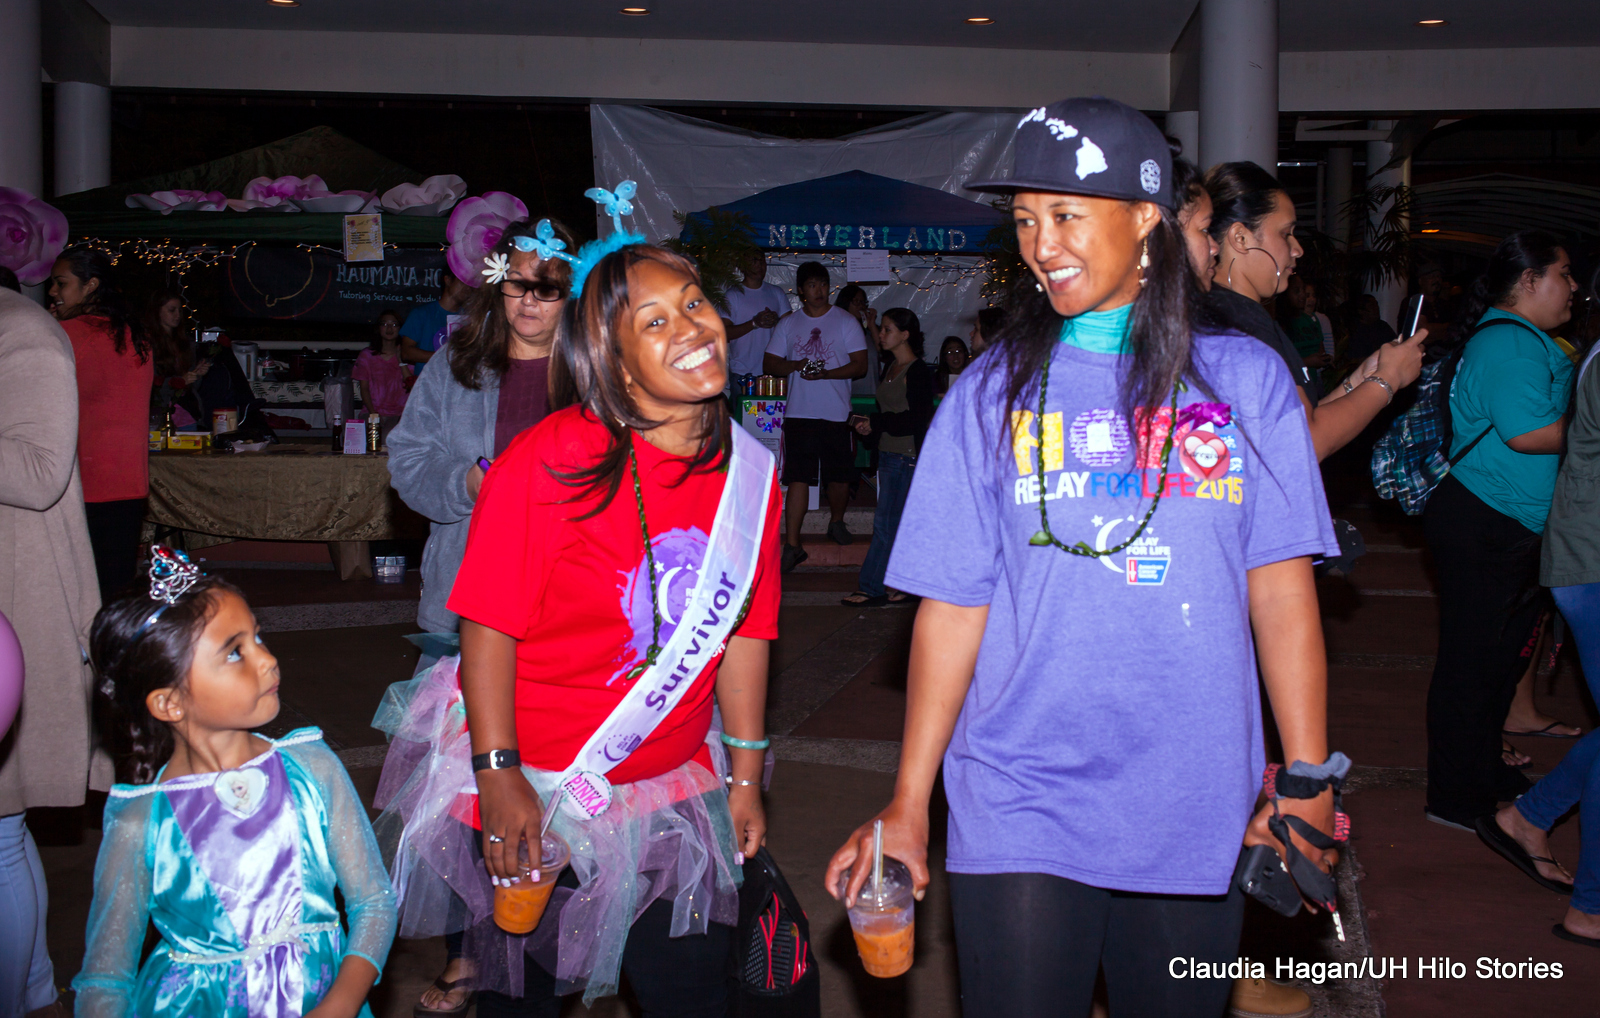 PHOTOS: 10th Annual Relay for Life, UH Hilo's only all-night event